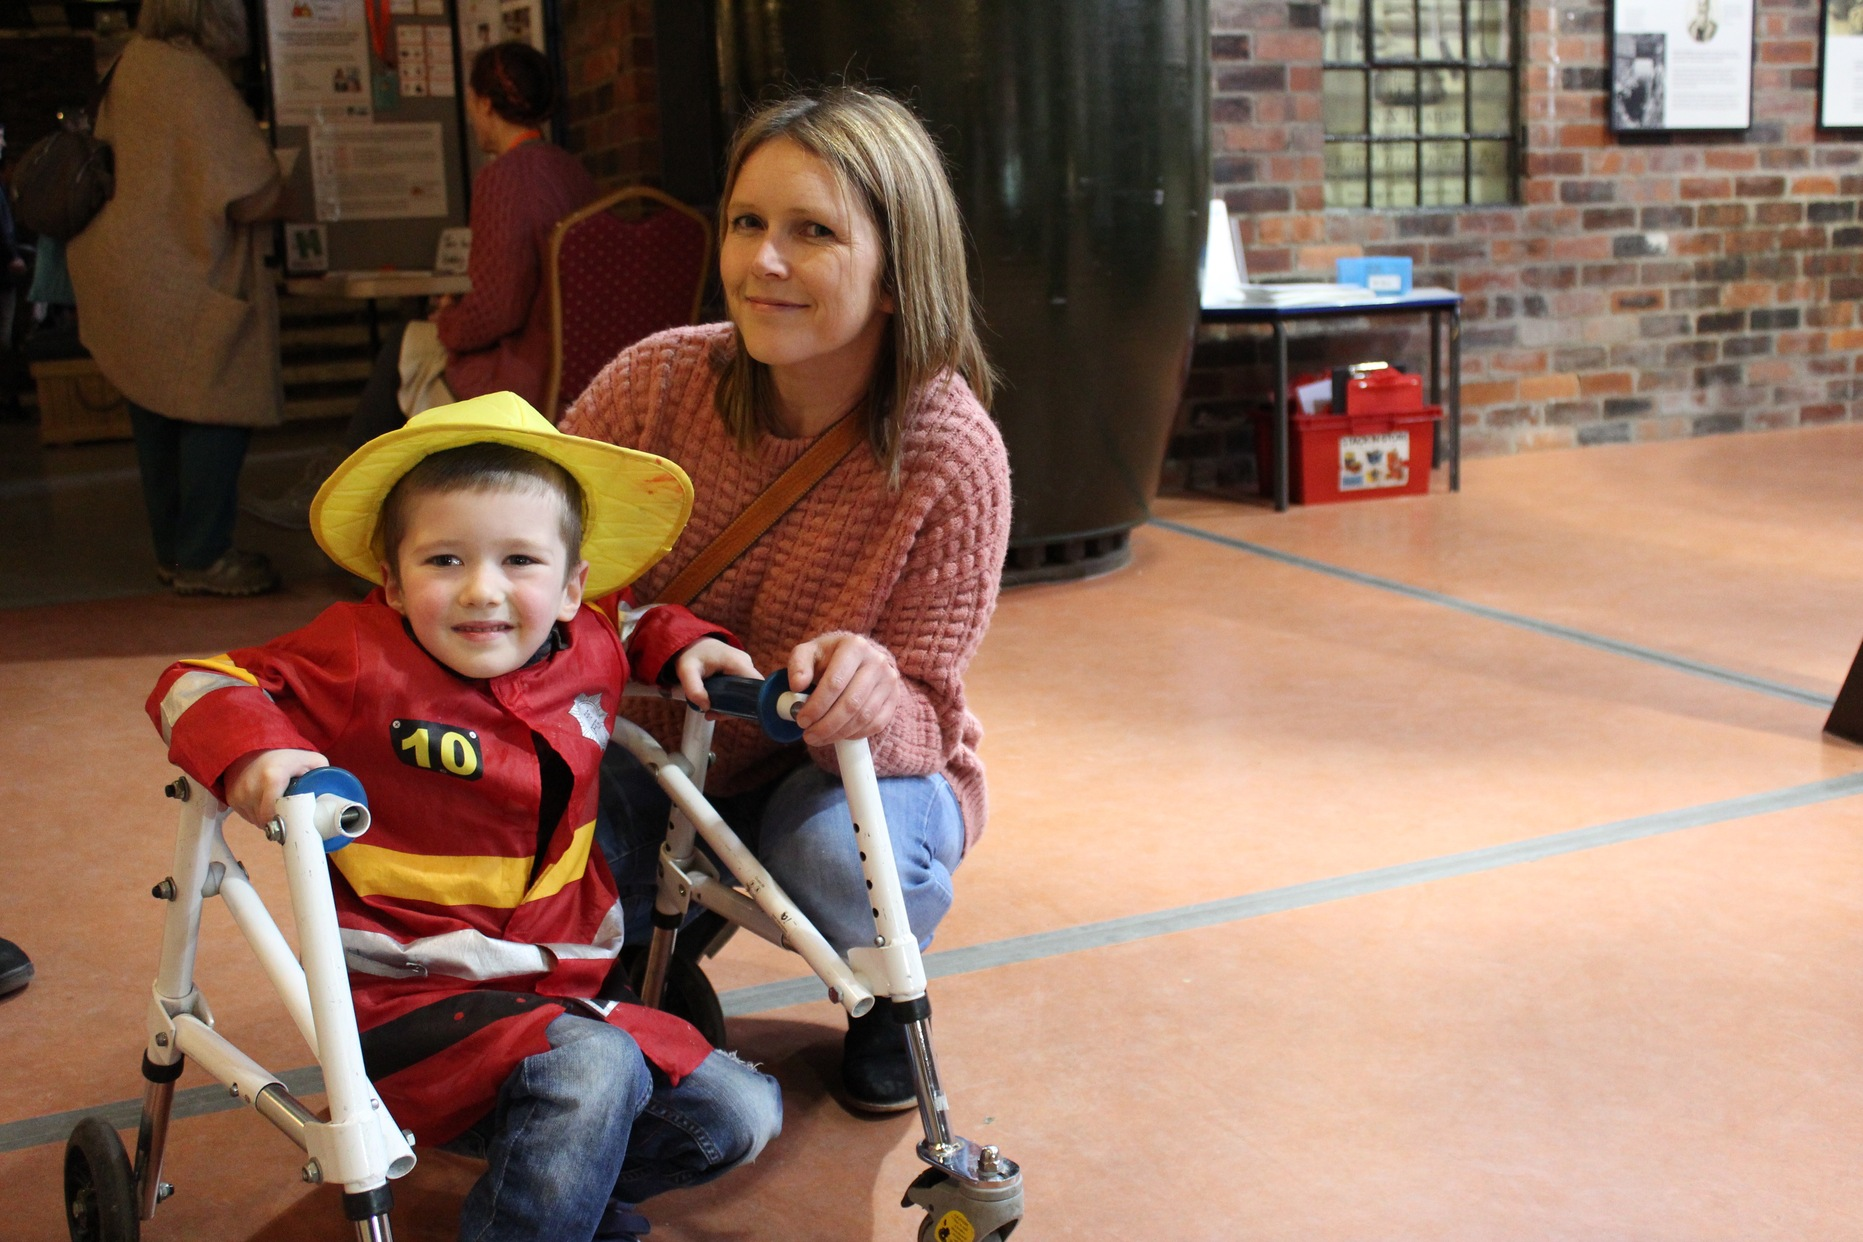 Sarah Hornby with son Luke taking part in Disabled Access Day at Kelham Island Museum 2017.